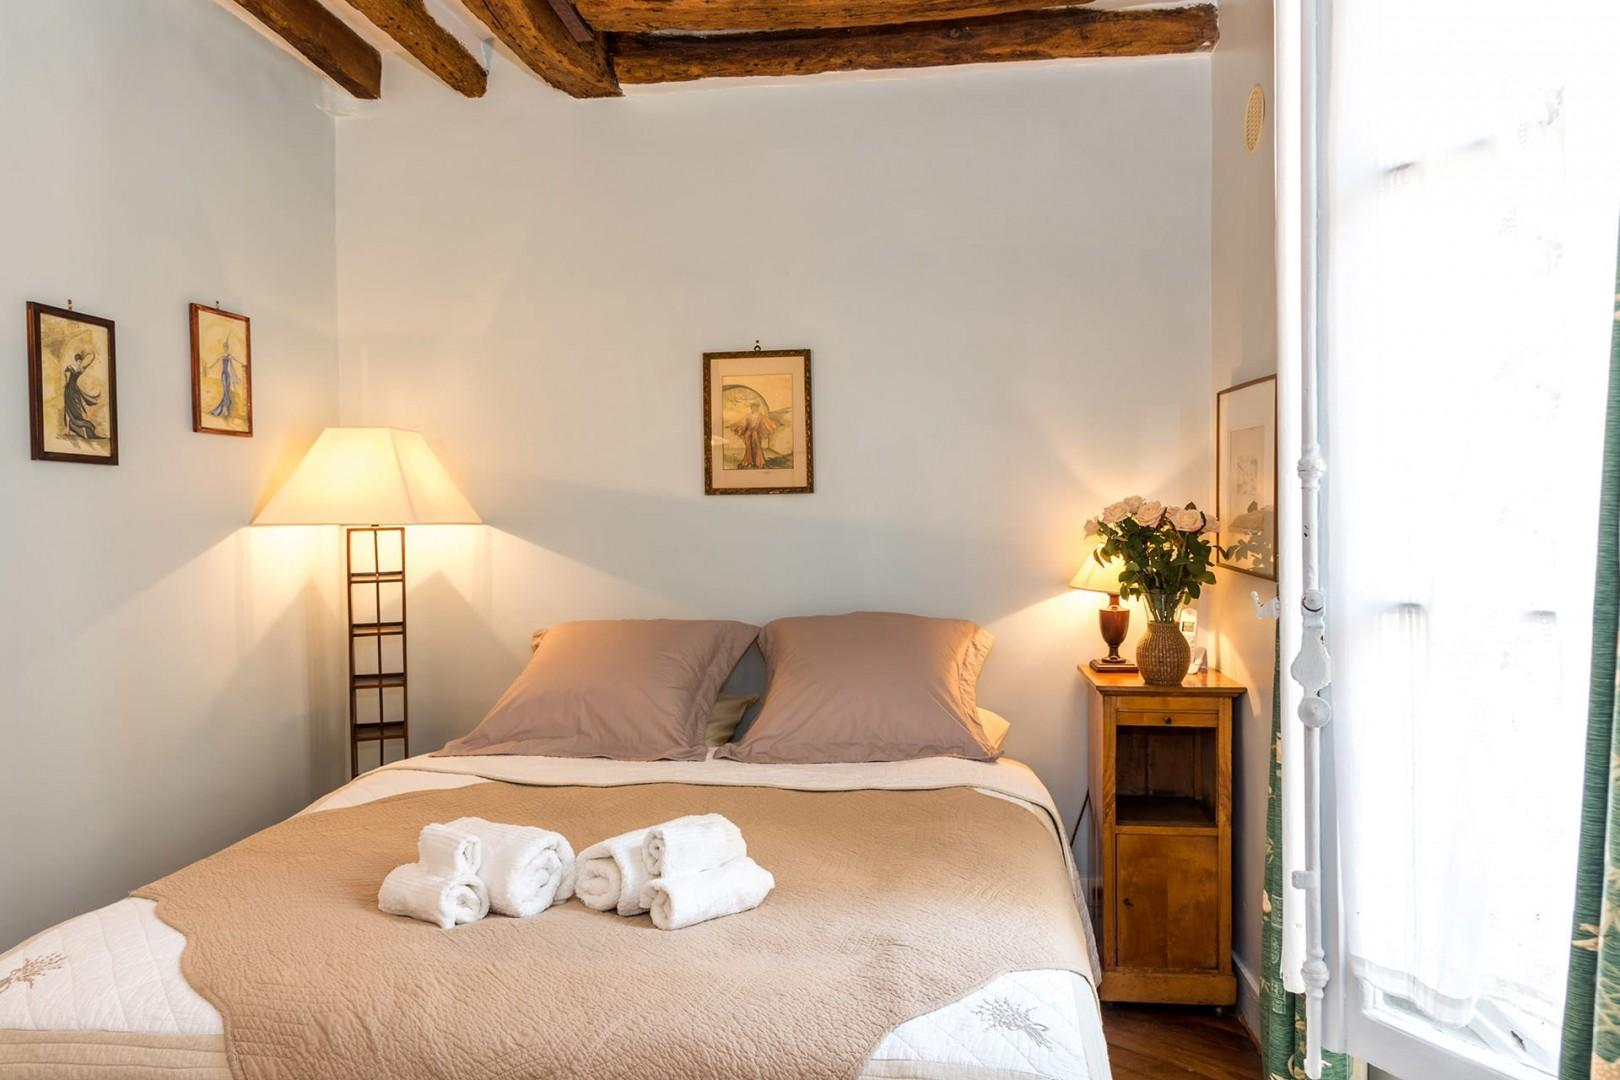 Make yourself at home in the lovely bedroom with a comfortable bed and linens.